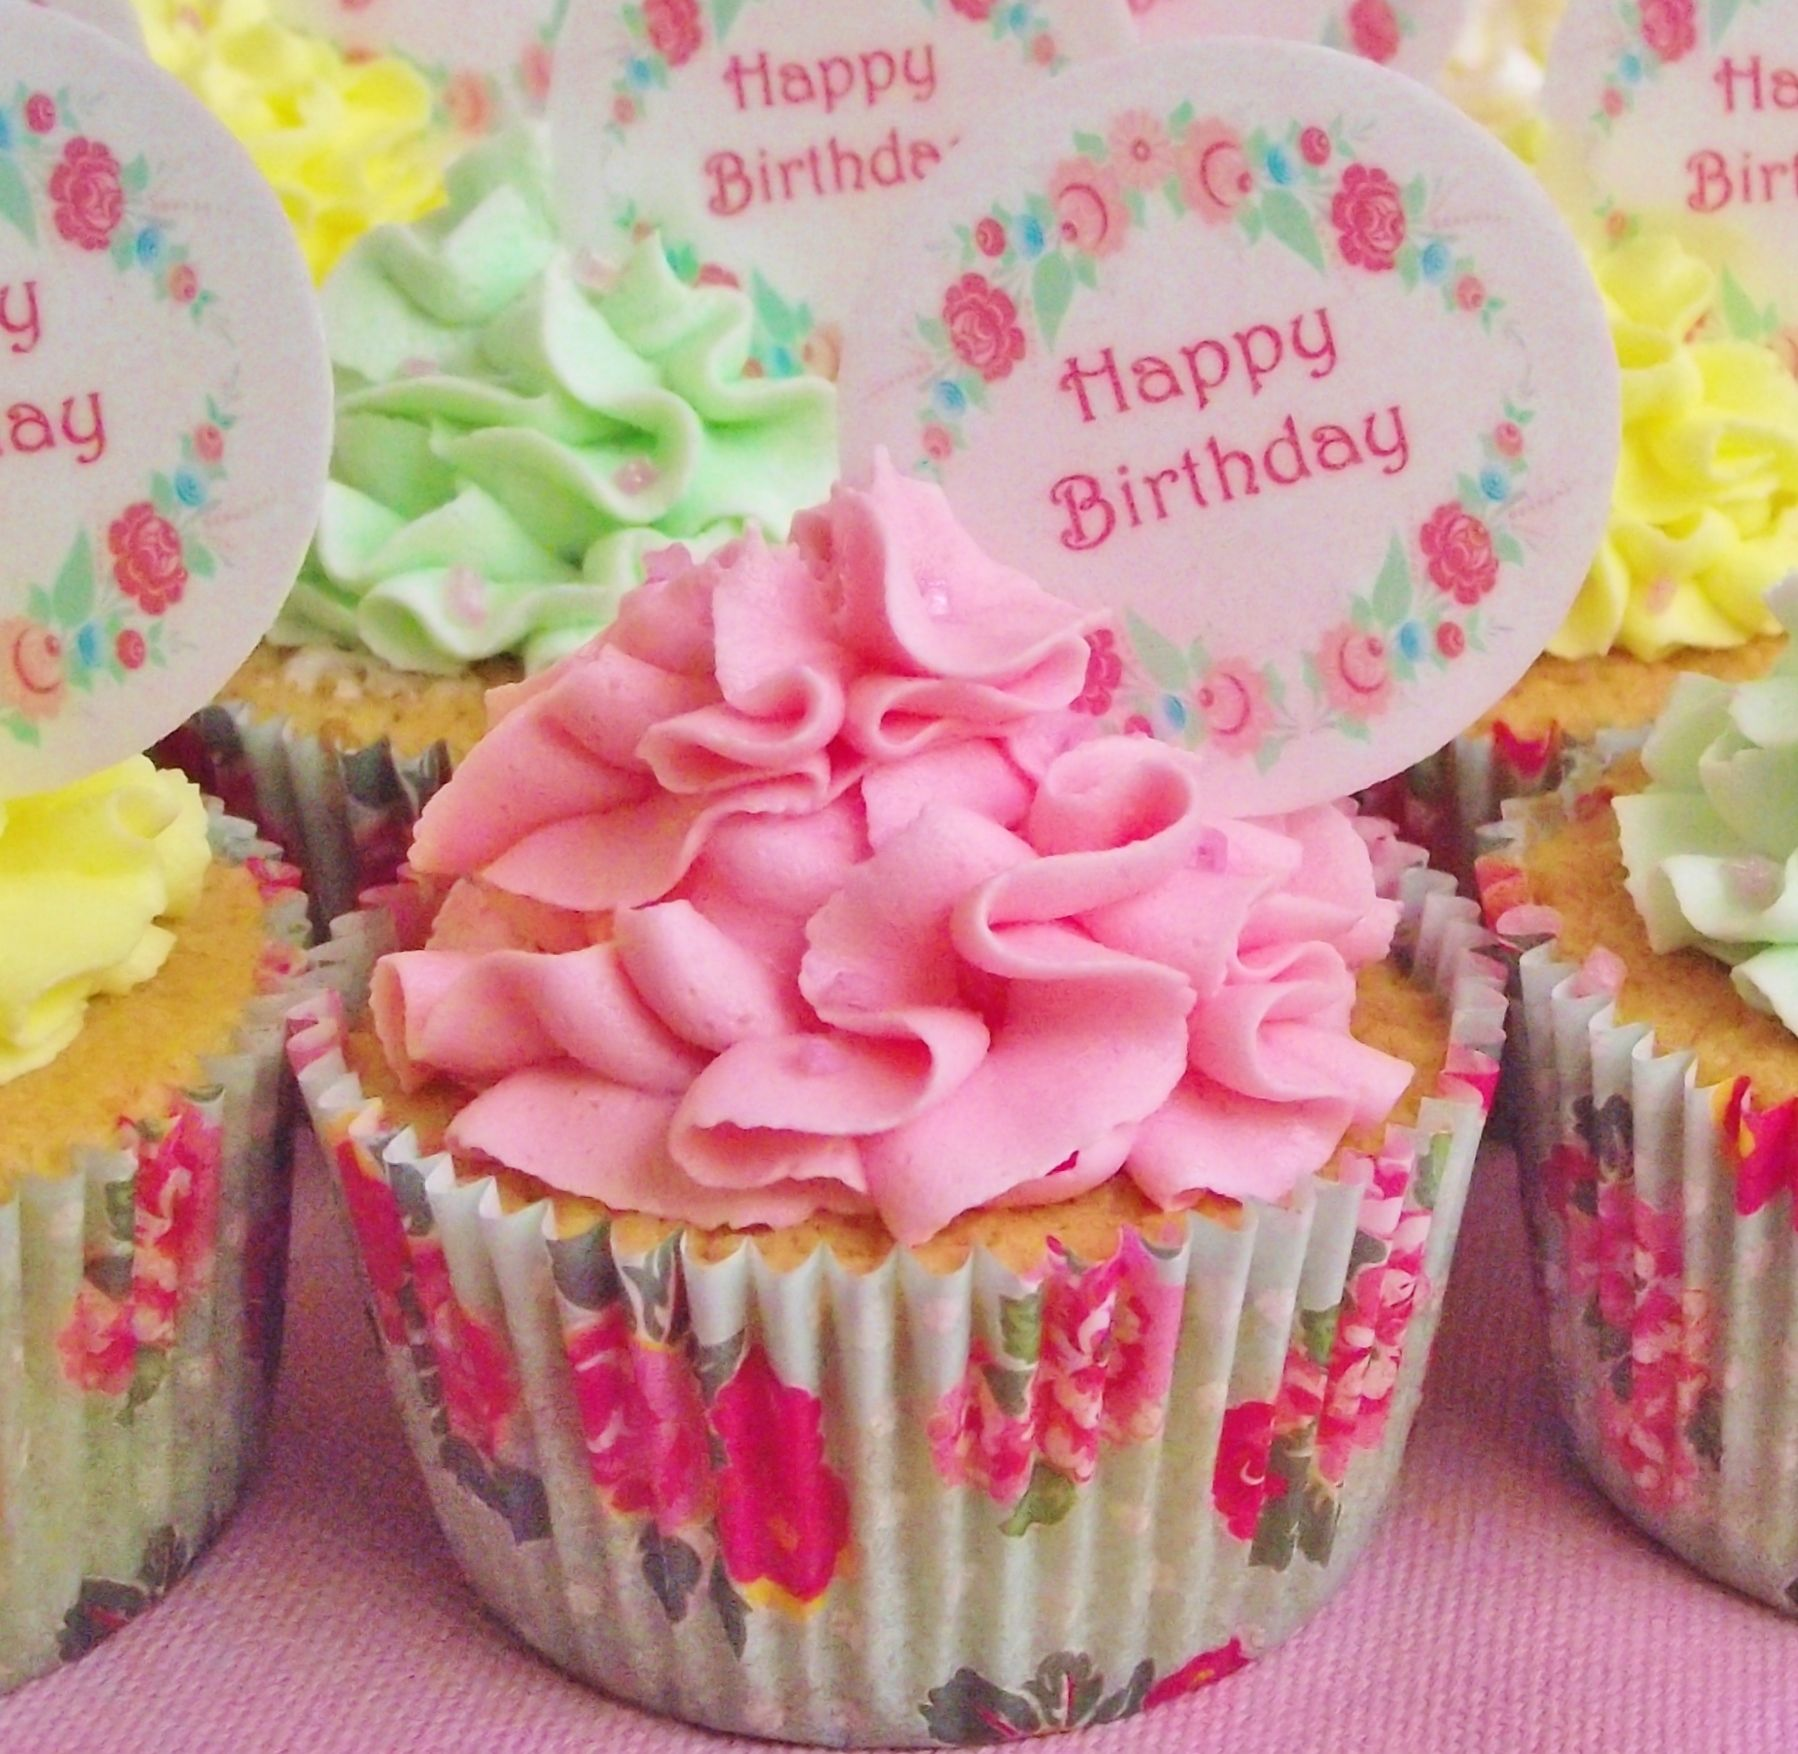 Cupcakes Happy Birthday Message